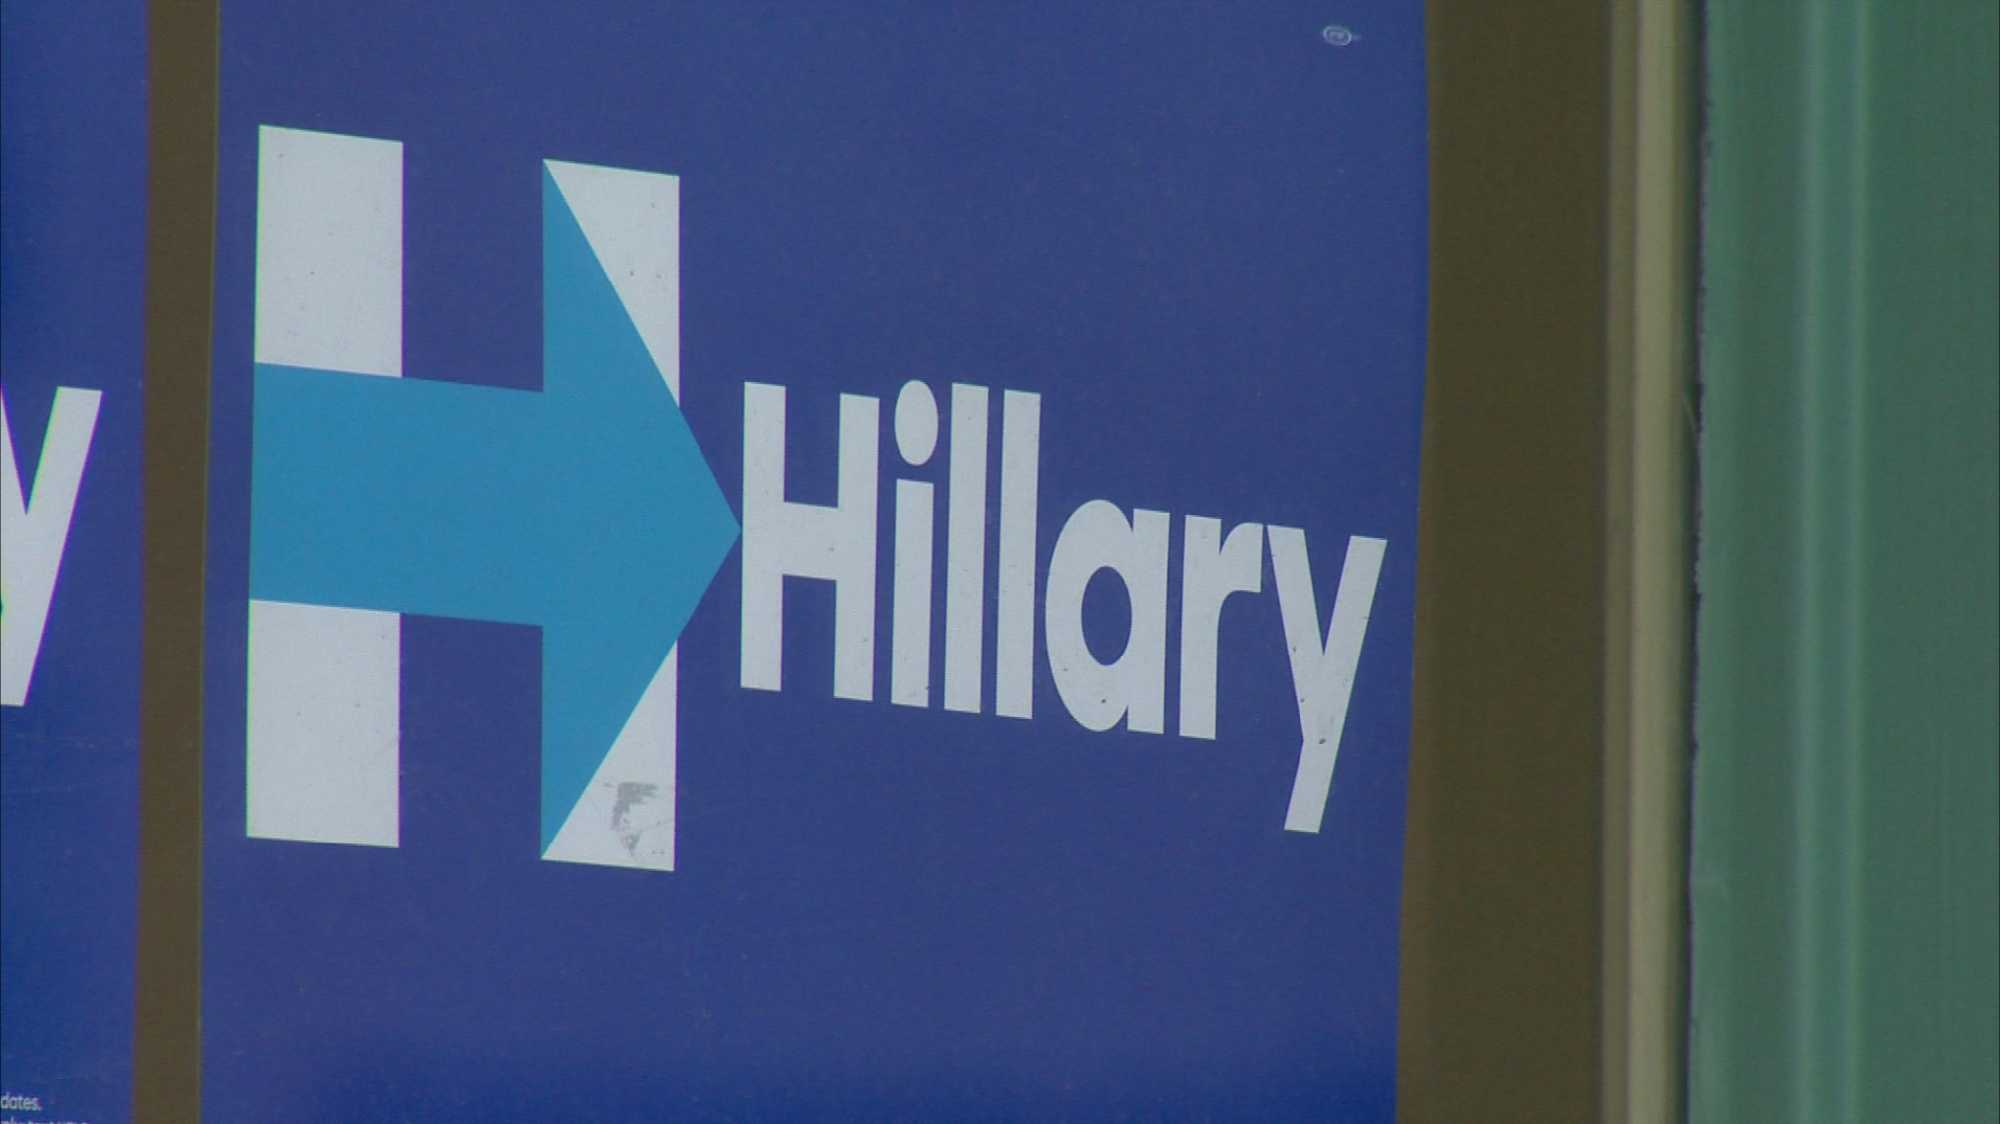 Hillary Clinton campaign sign